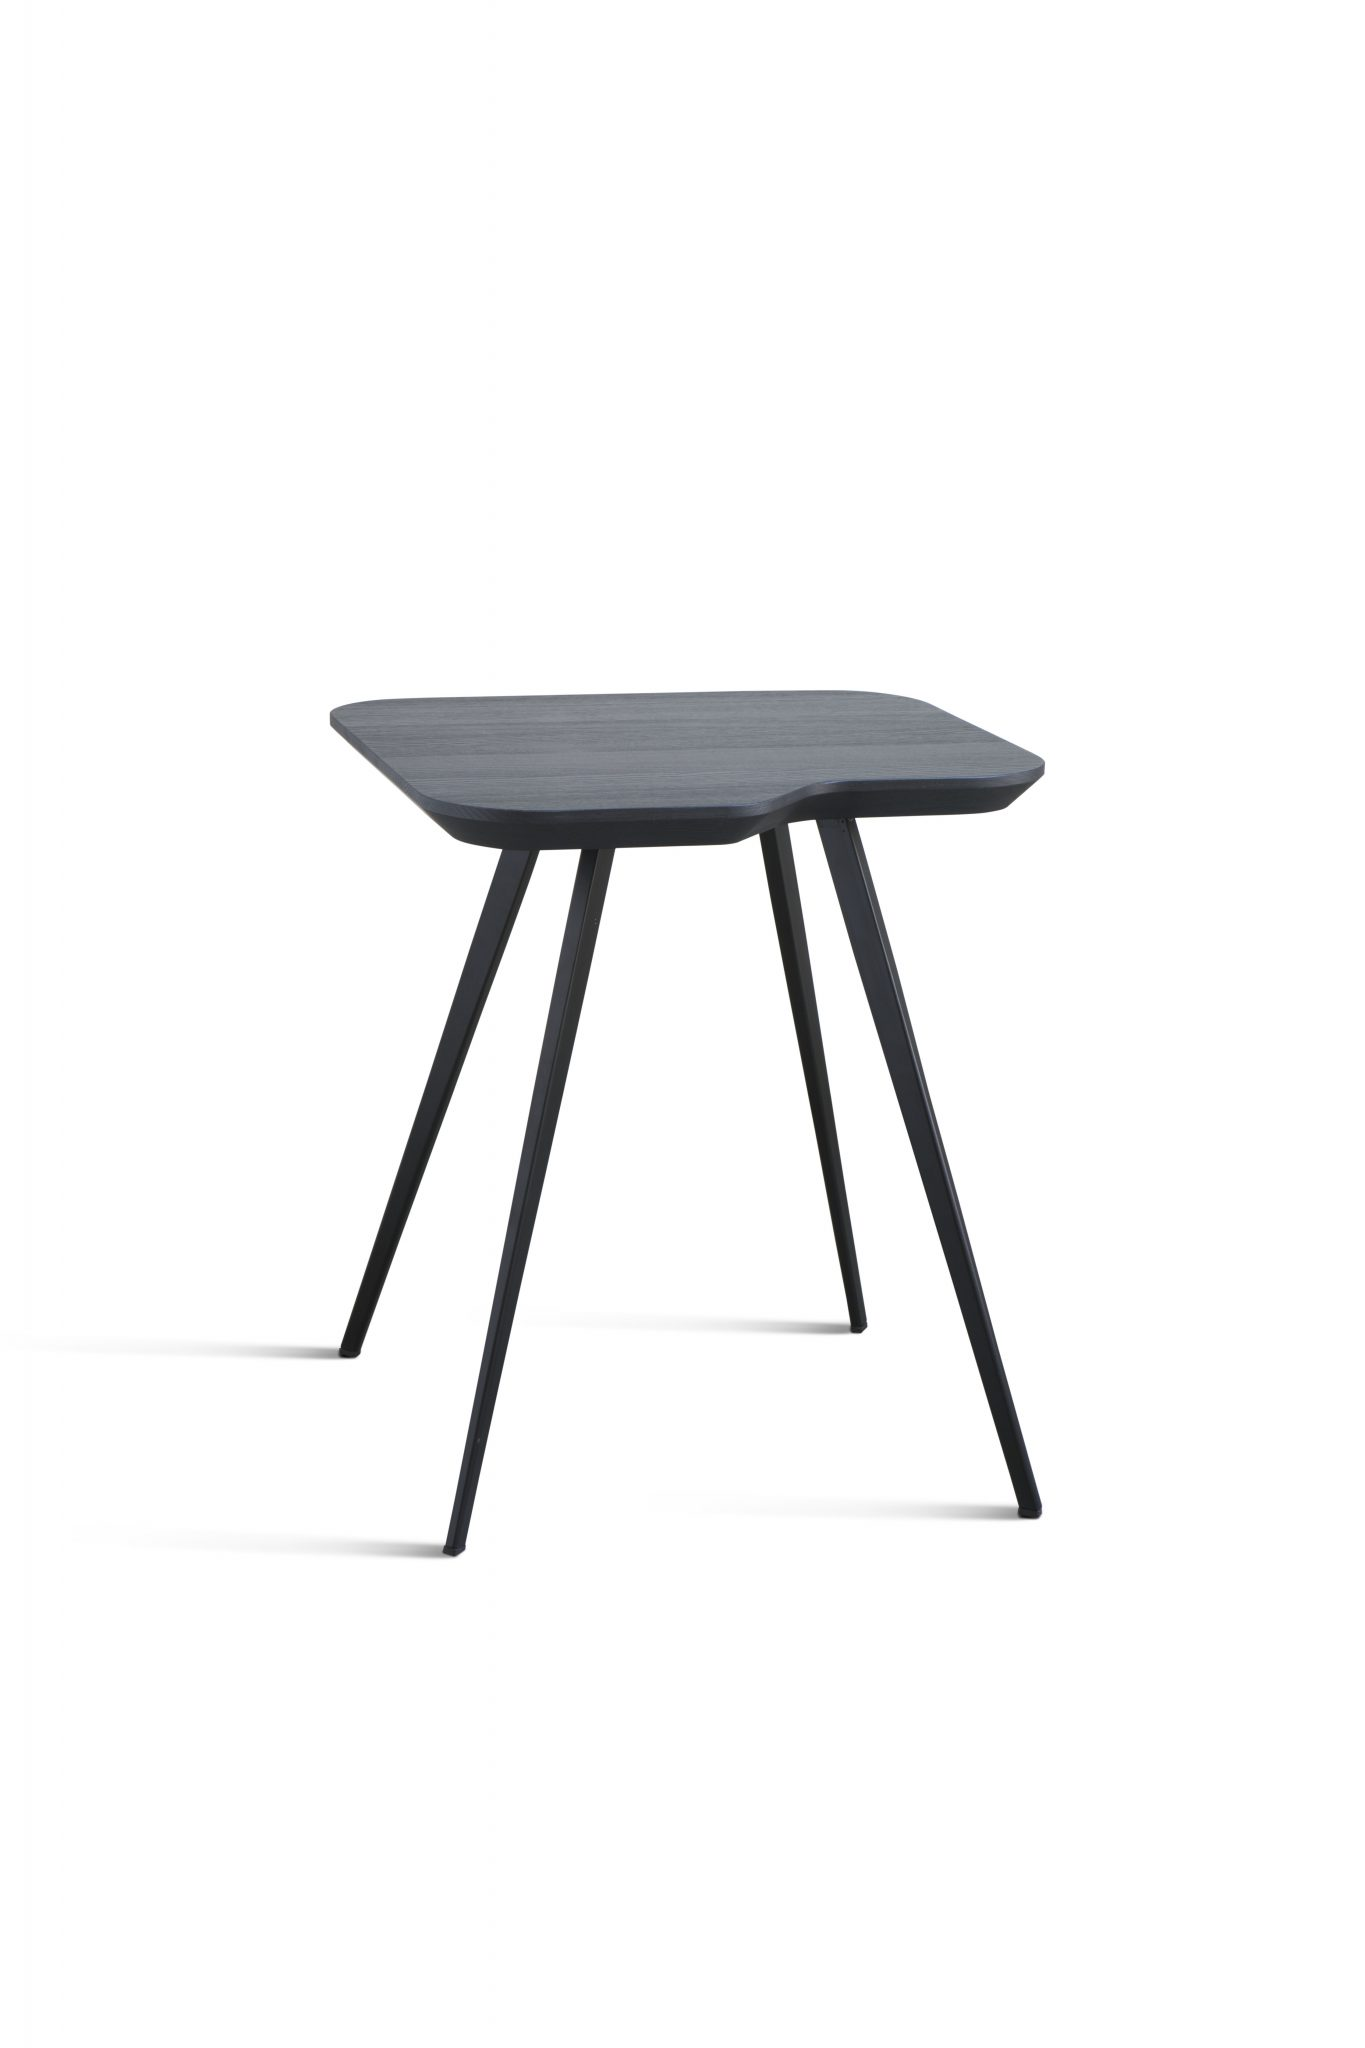 TABLE AKY SMALL TABLE MET